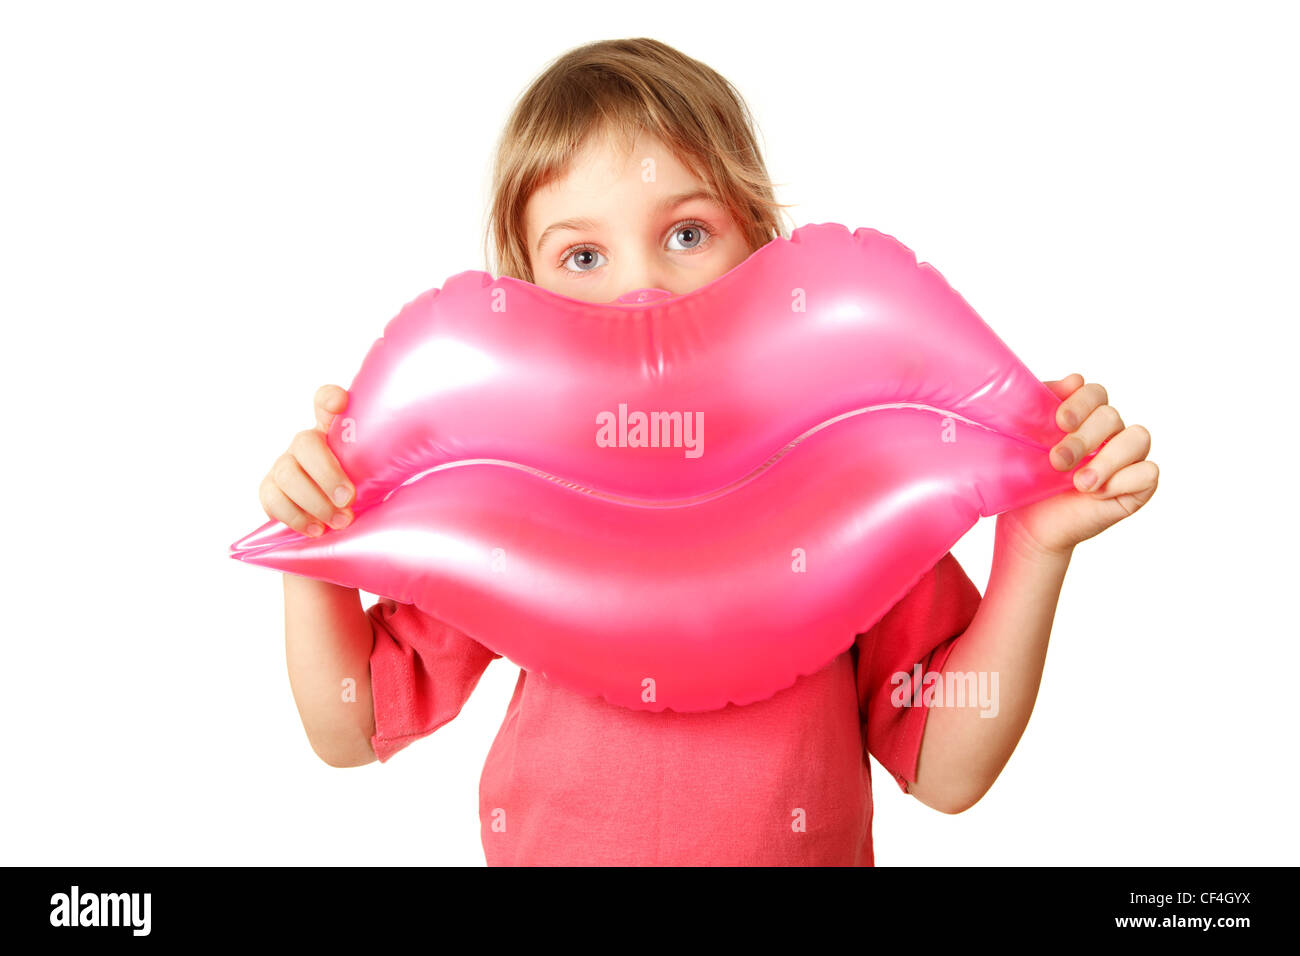 Girl holds toy, inflatable pink lips. Isolated on white background. - Stock Image